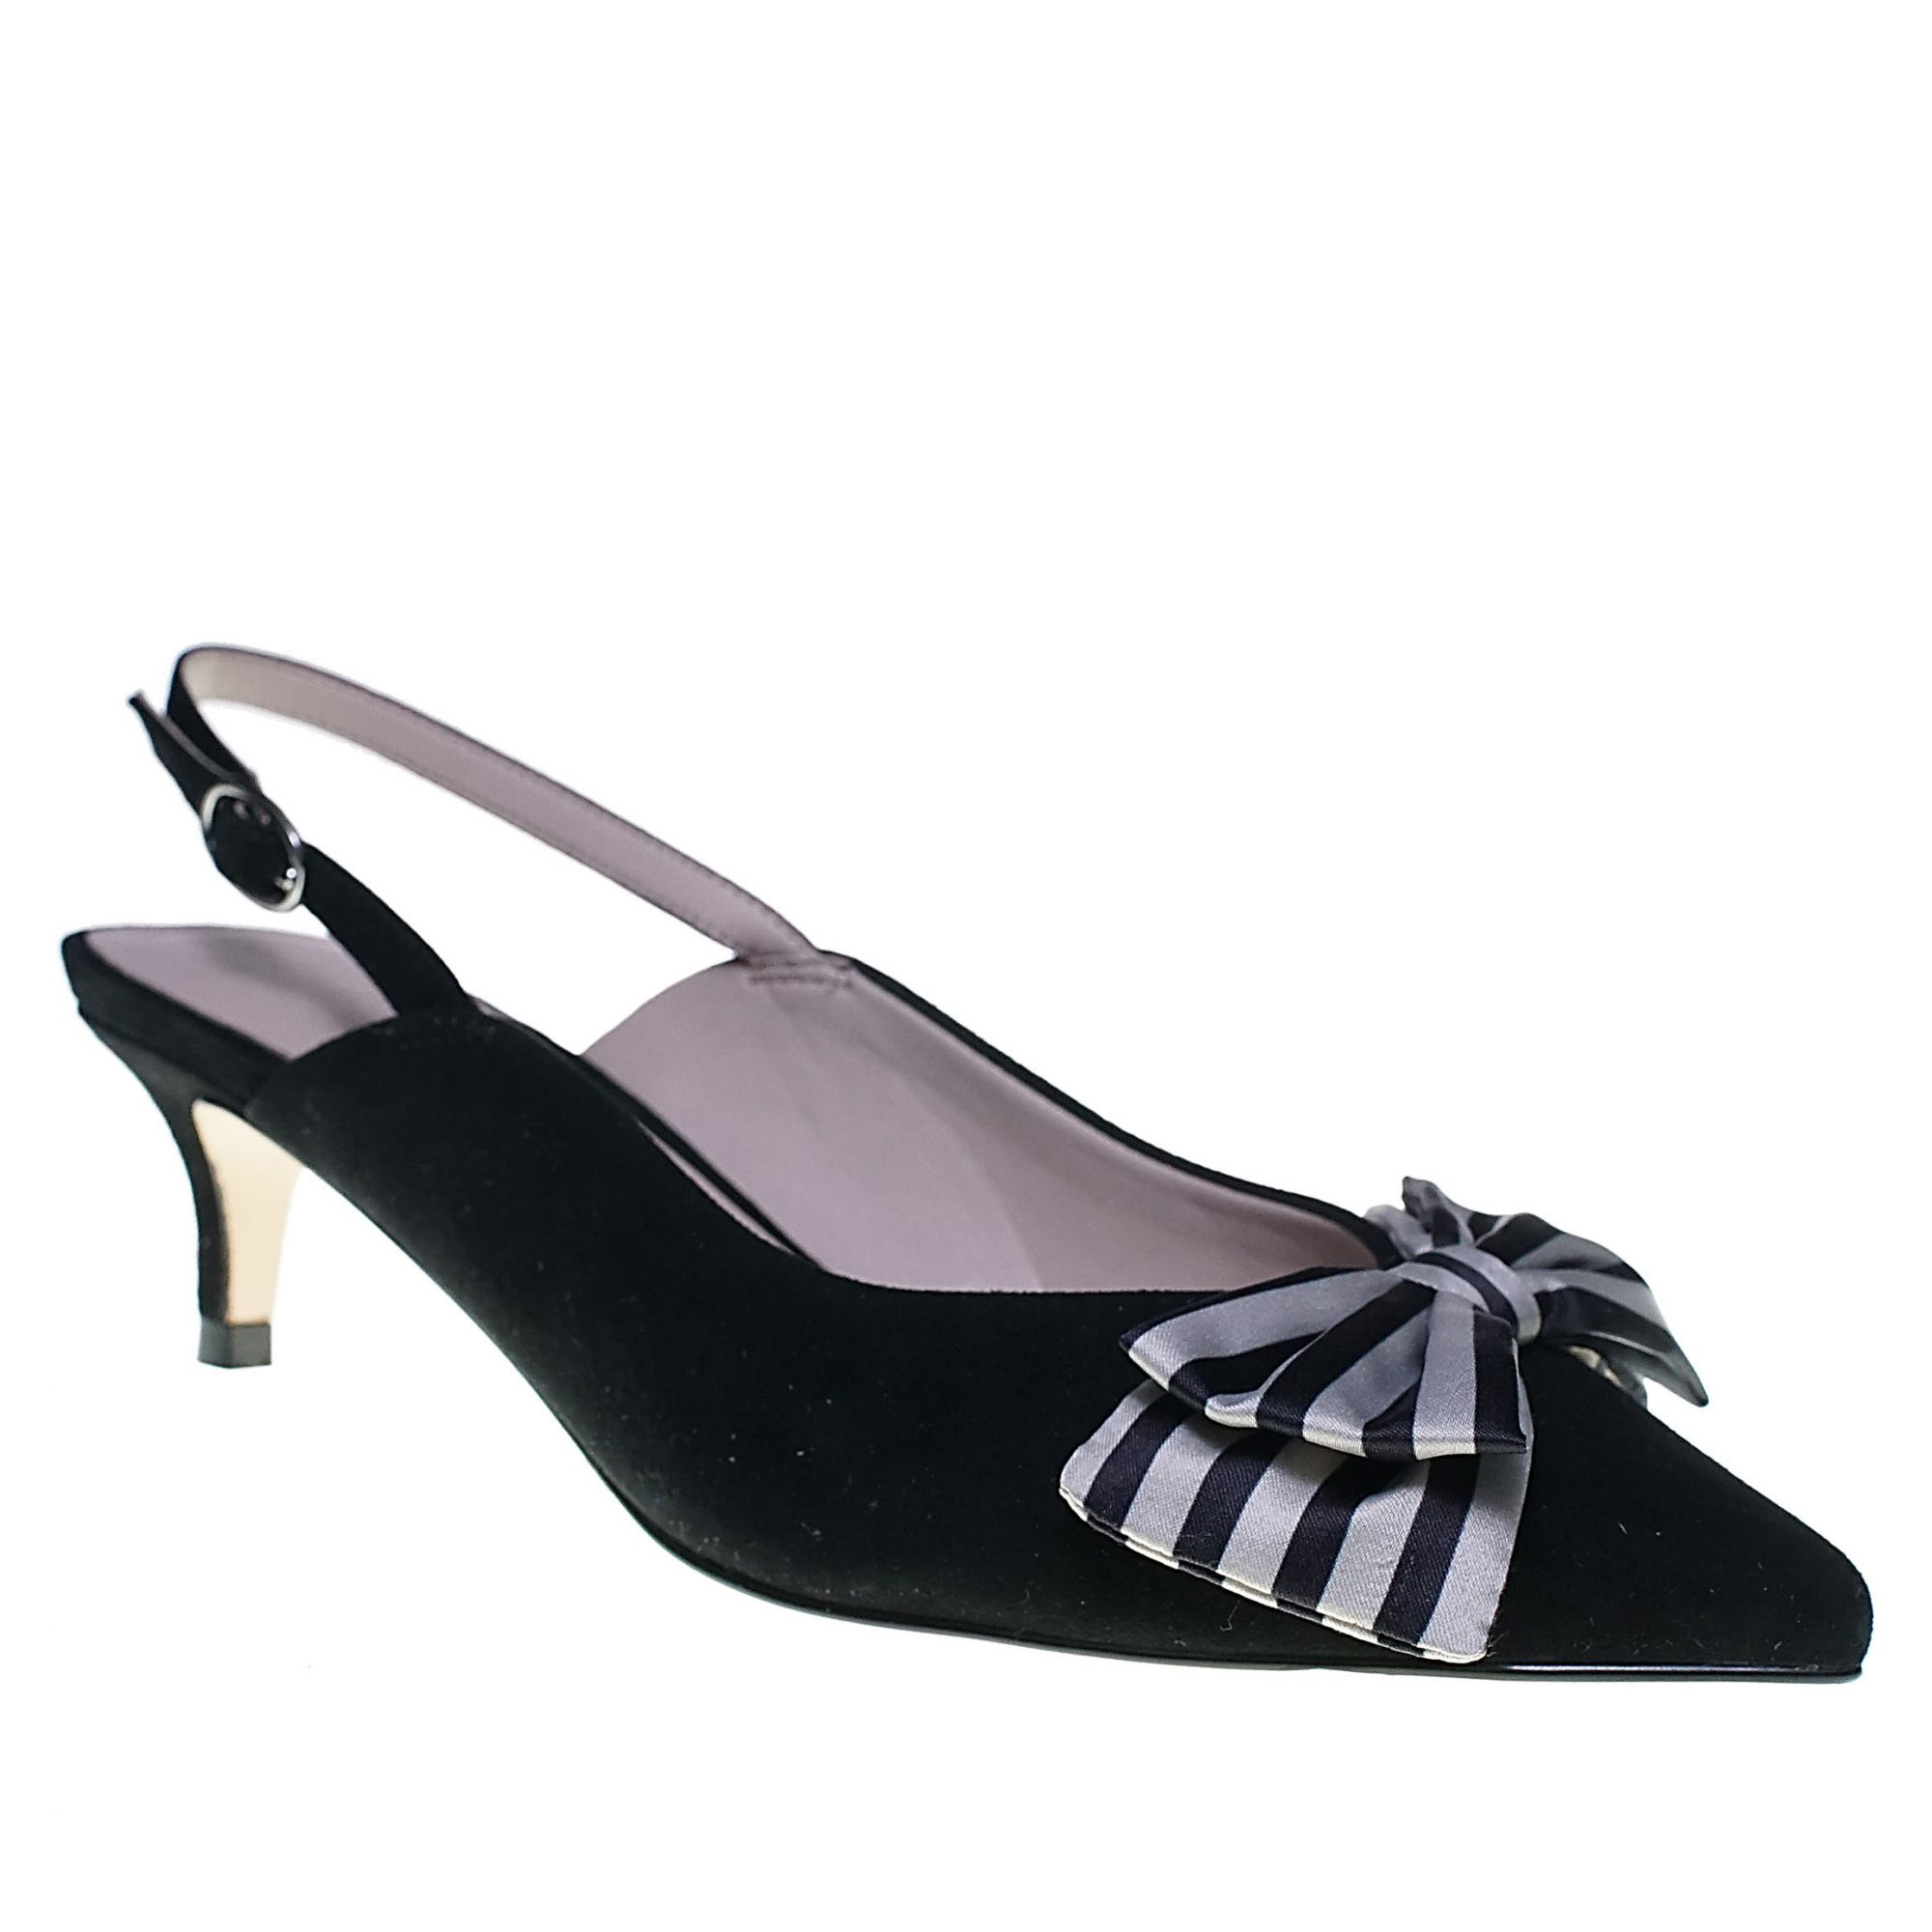 Black velvet slingback pump with bow from Cupcakes and Cashmere shoe collection at Nordstrom